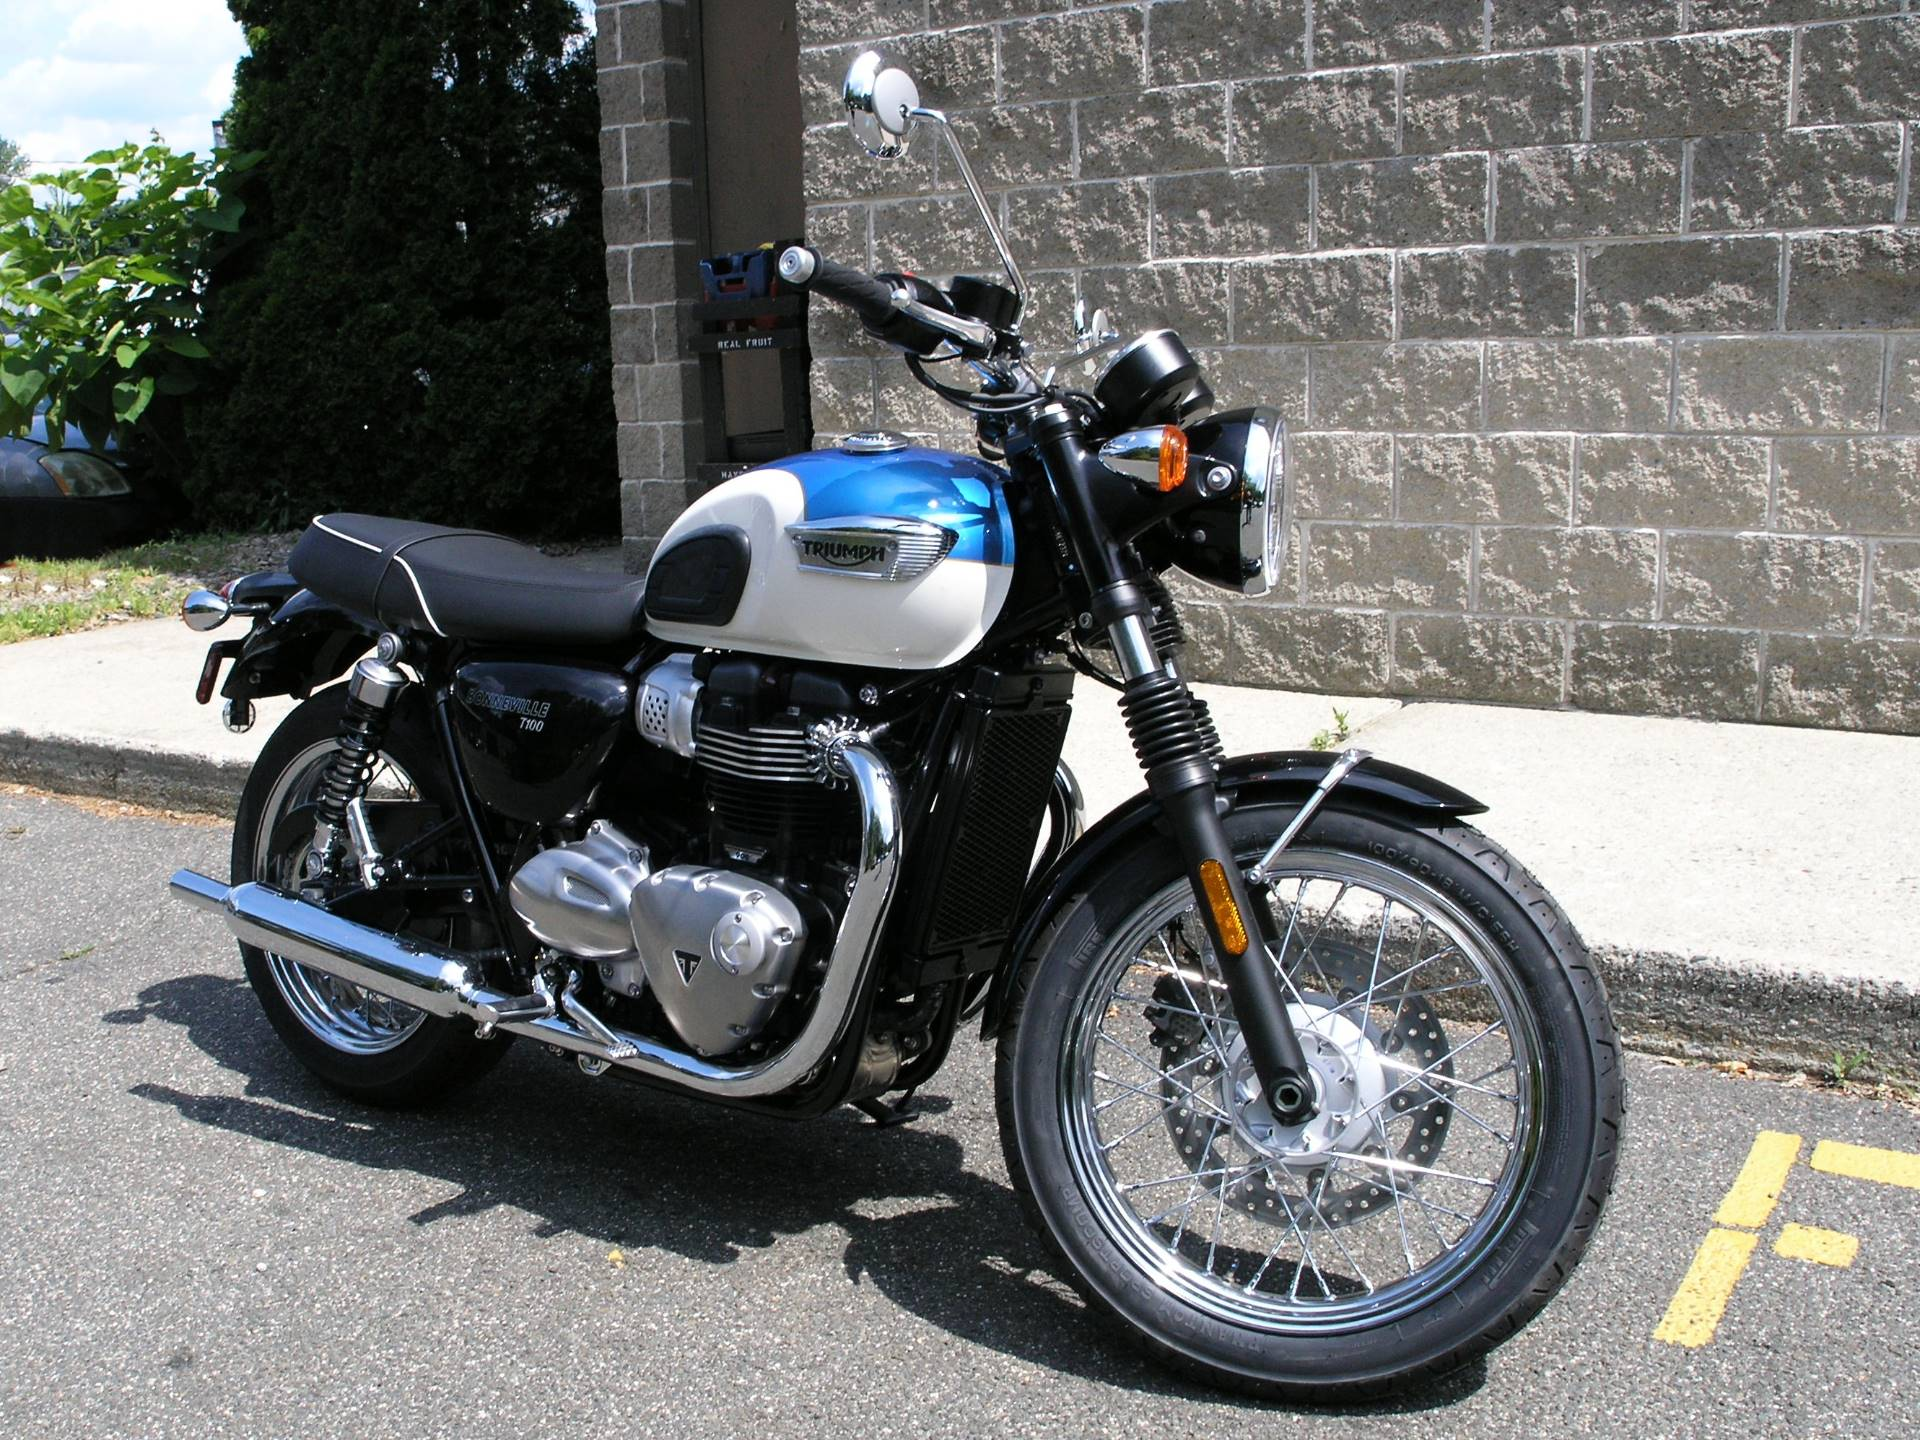 New 2018 Triumph Bonneville T100 Motorcycles In Enfield Ct Stock